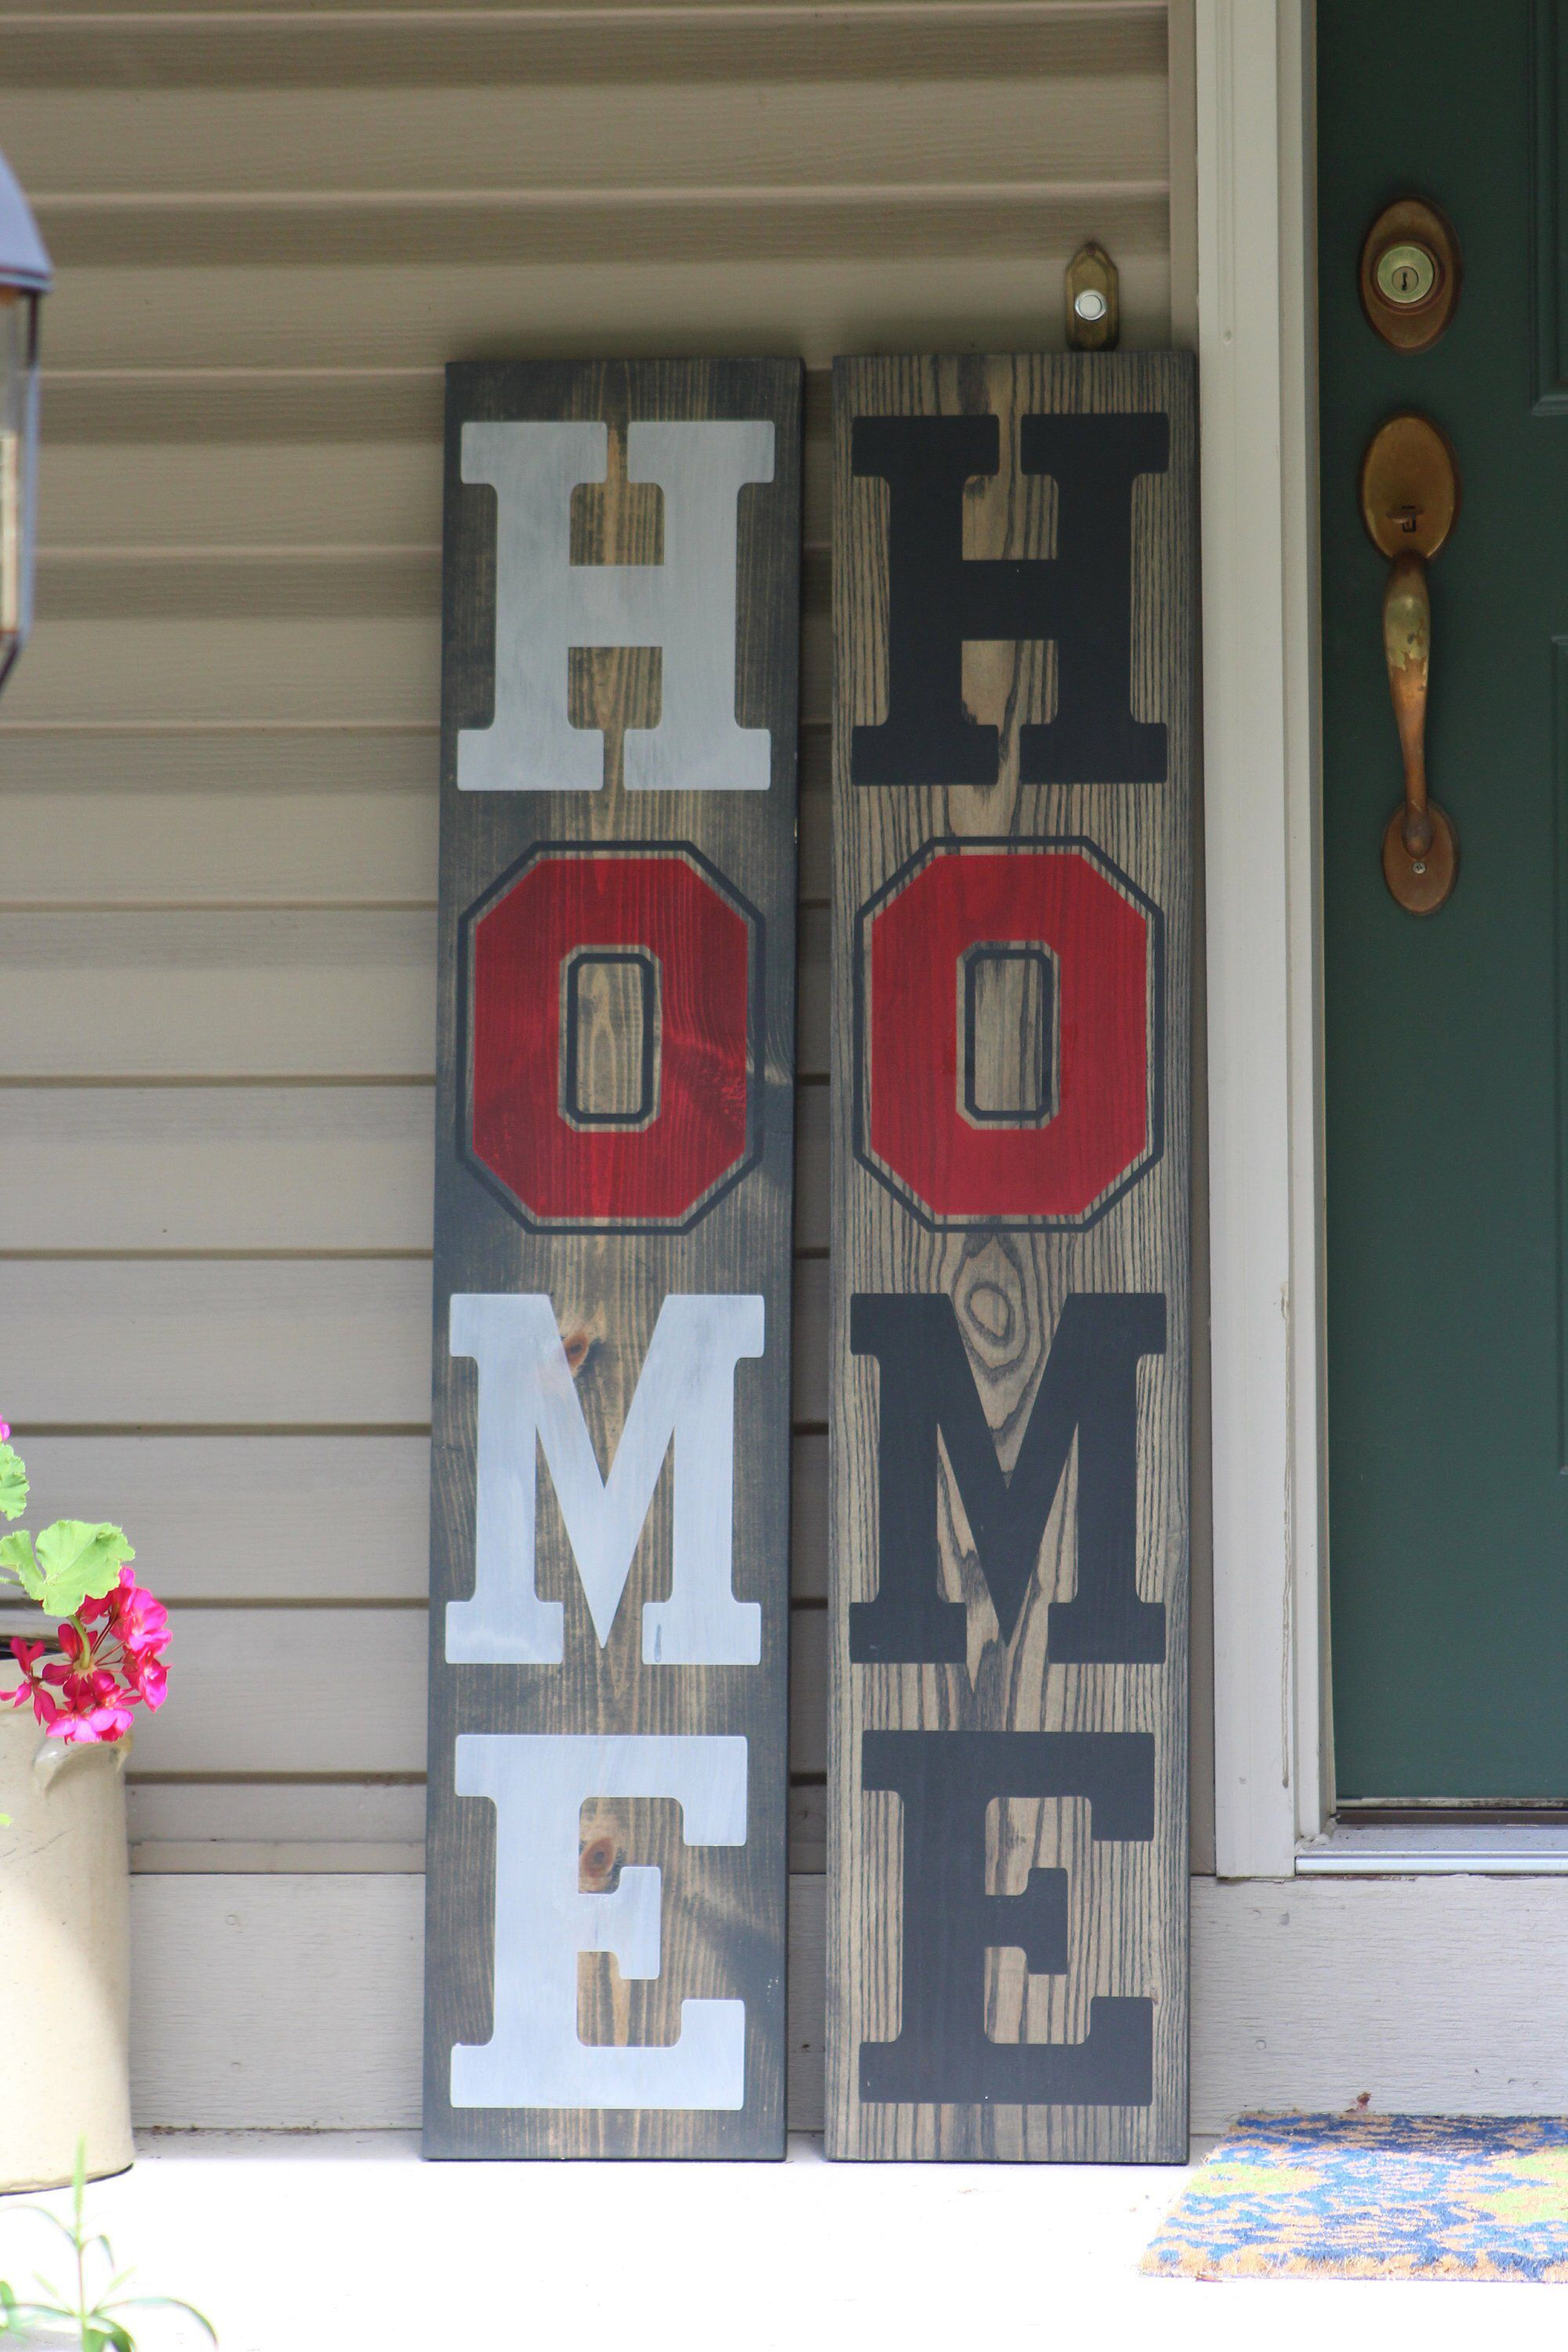 Home State Porch Sign, Welcome, Ohio, State, Porch, Outdoor sign, HOME, Ohio State porch, Ohio State Home, Home Porch